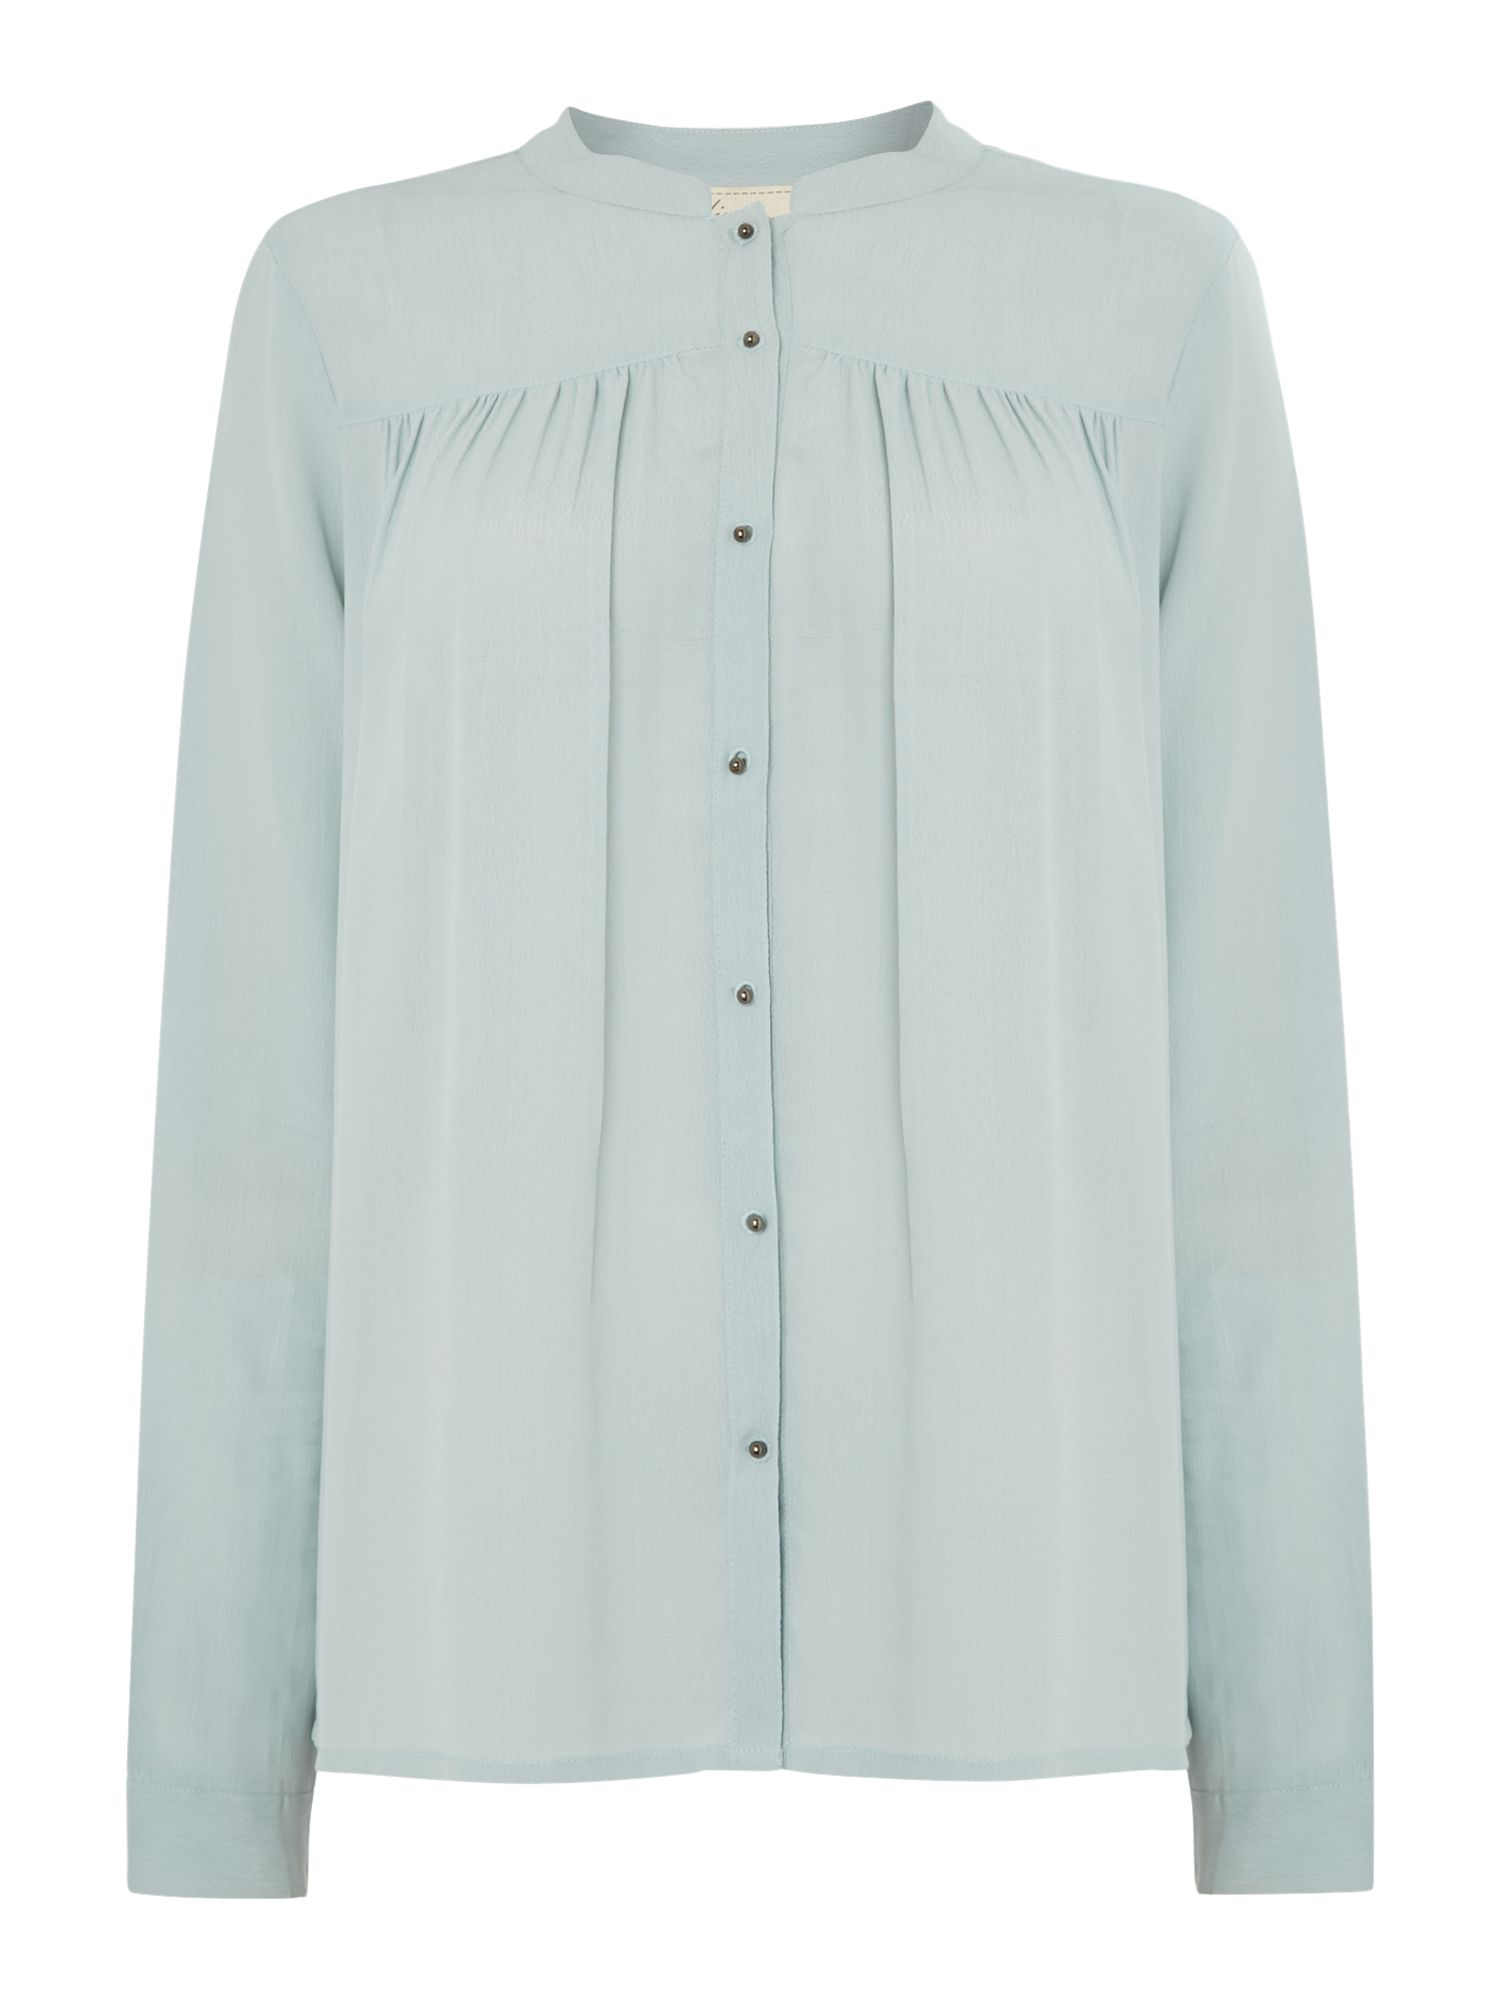 Manhatten essential blouse